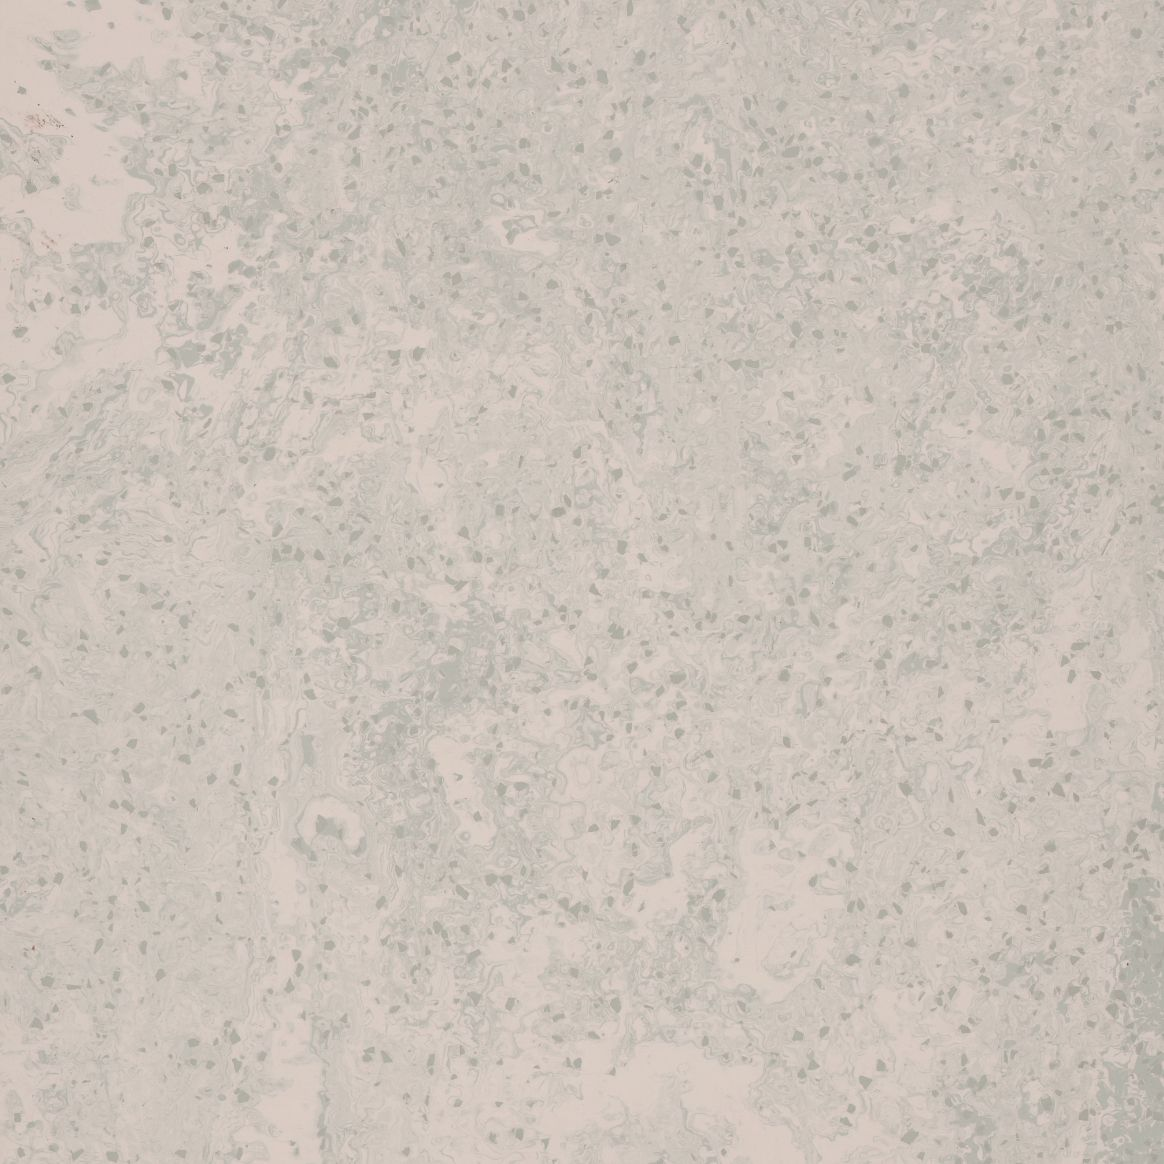 Mannington Teles Tile 17 1/2 x 17 1/2 Misty Bay